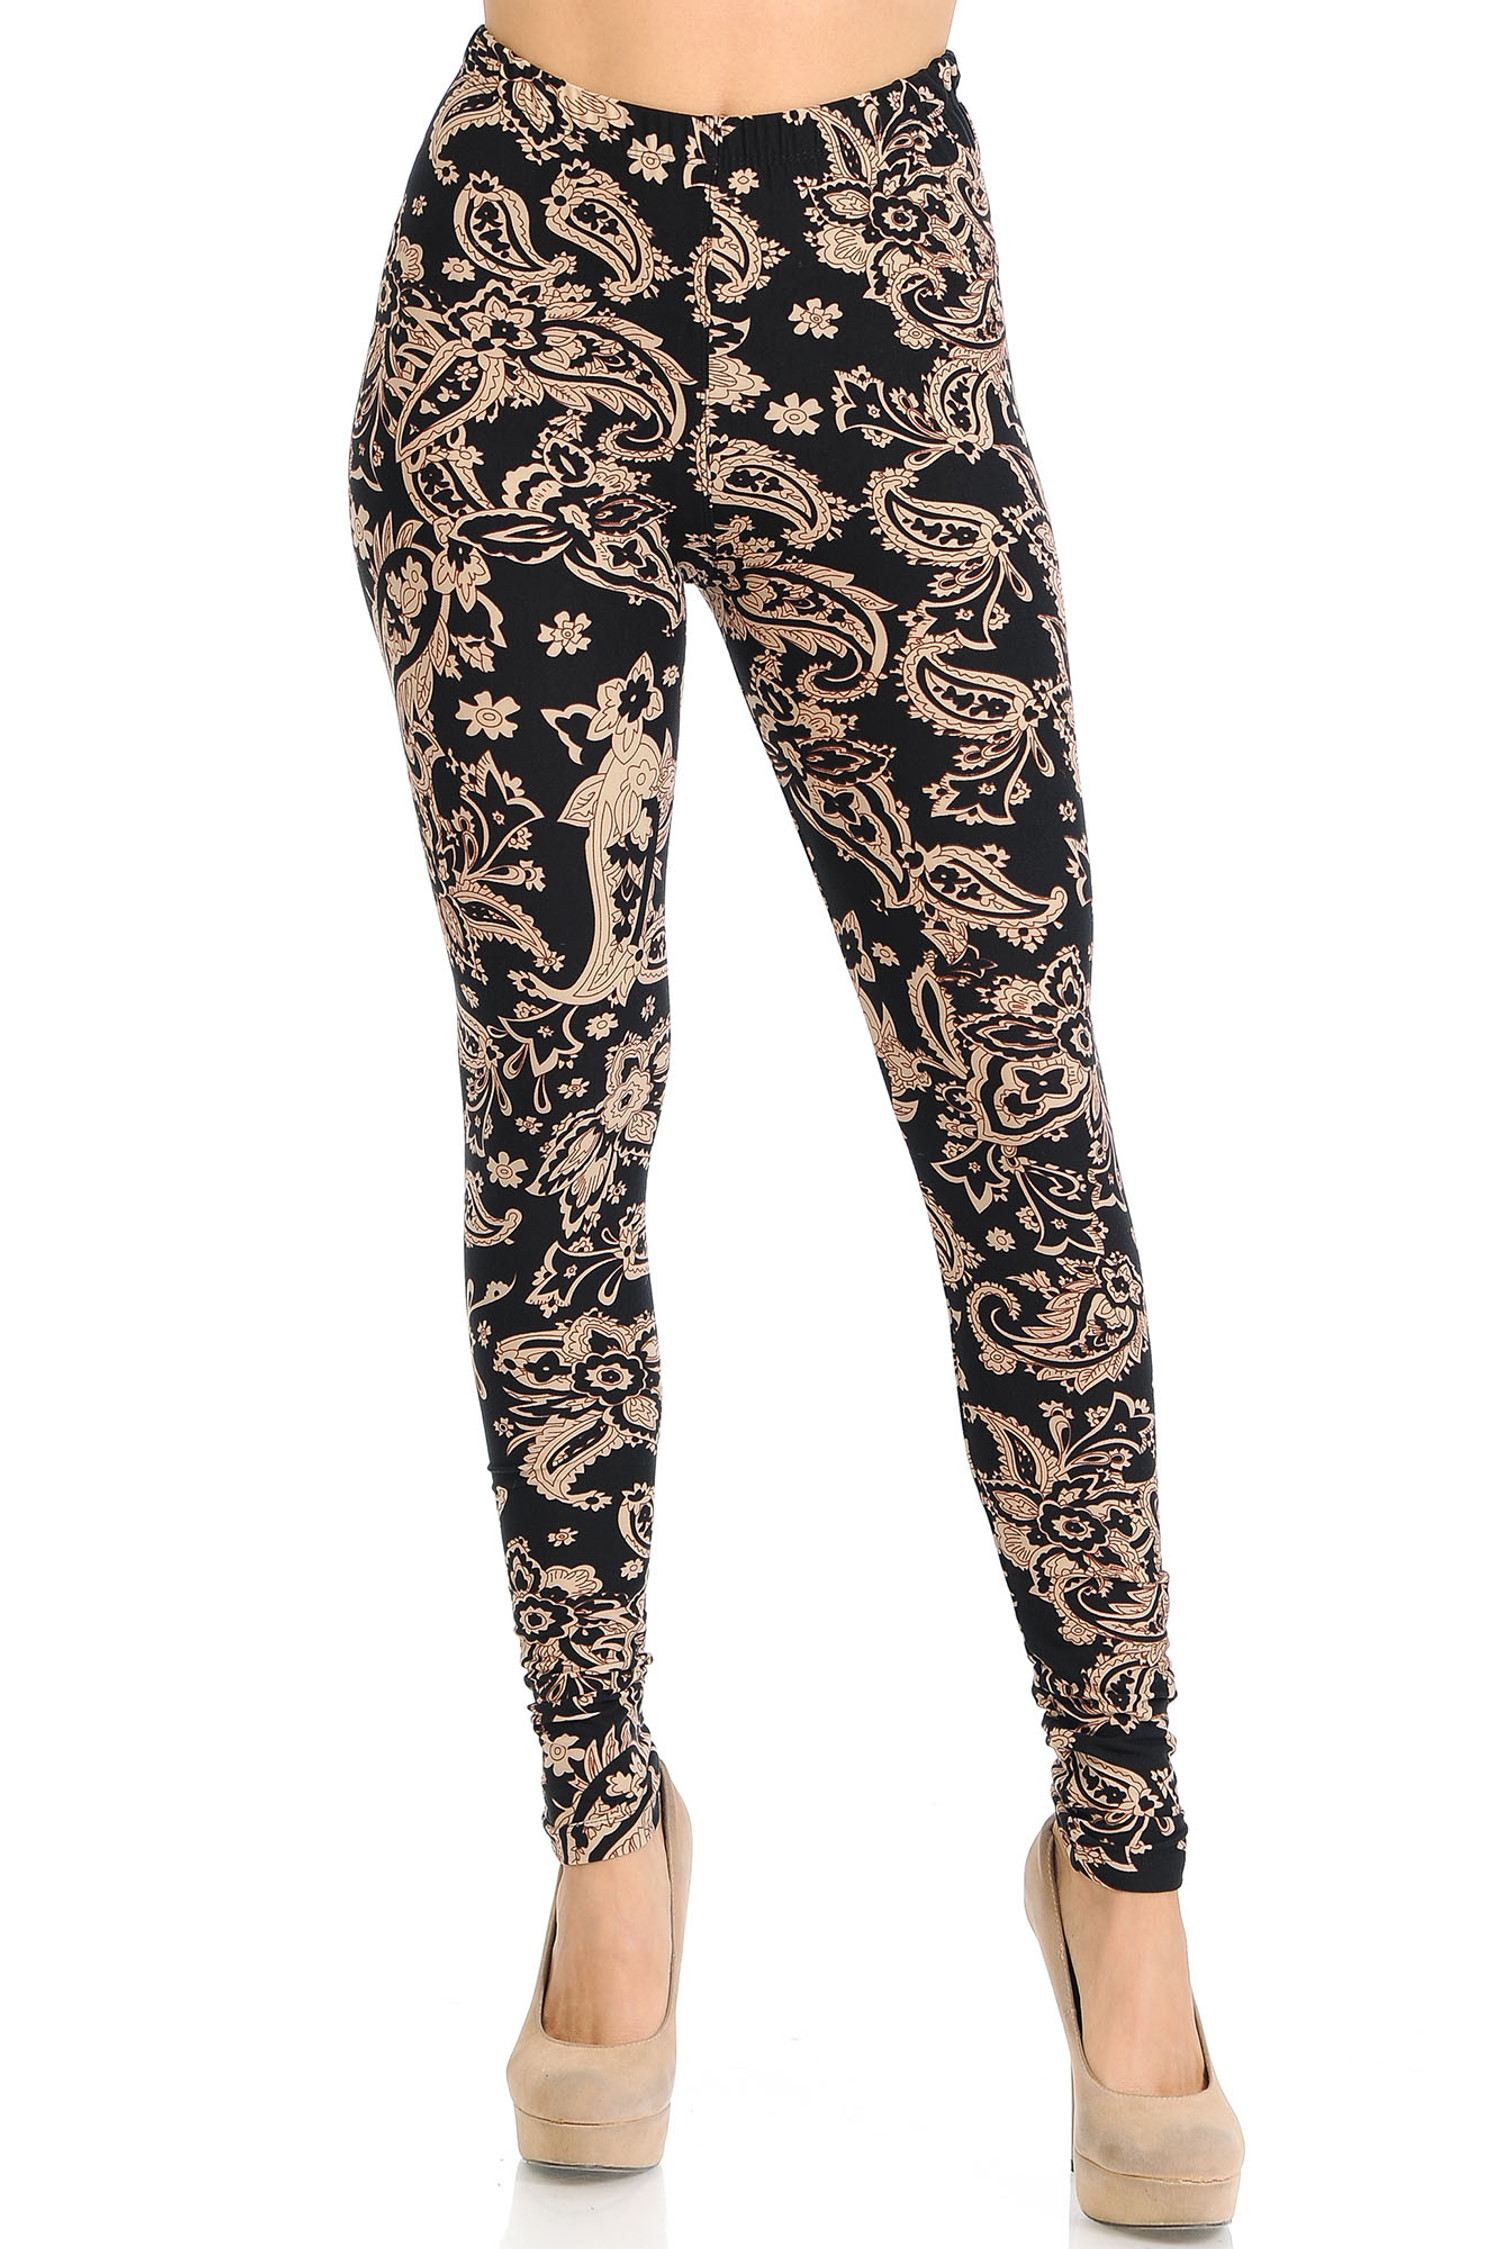 Brushed  Sand Pepper Paisley Plus Size Leggings